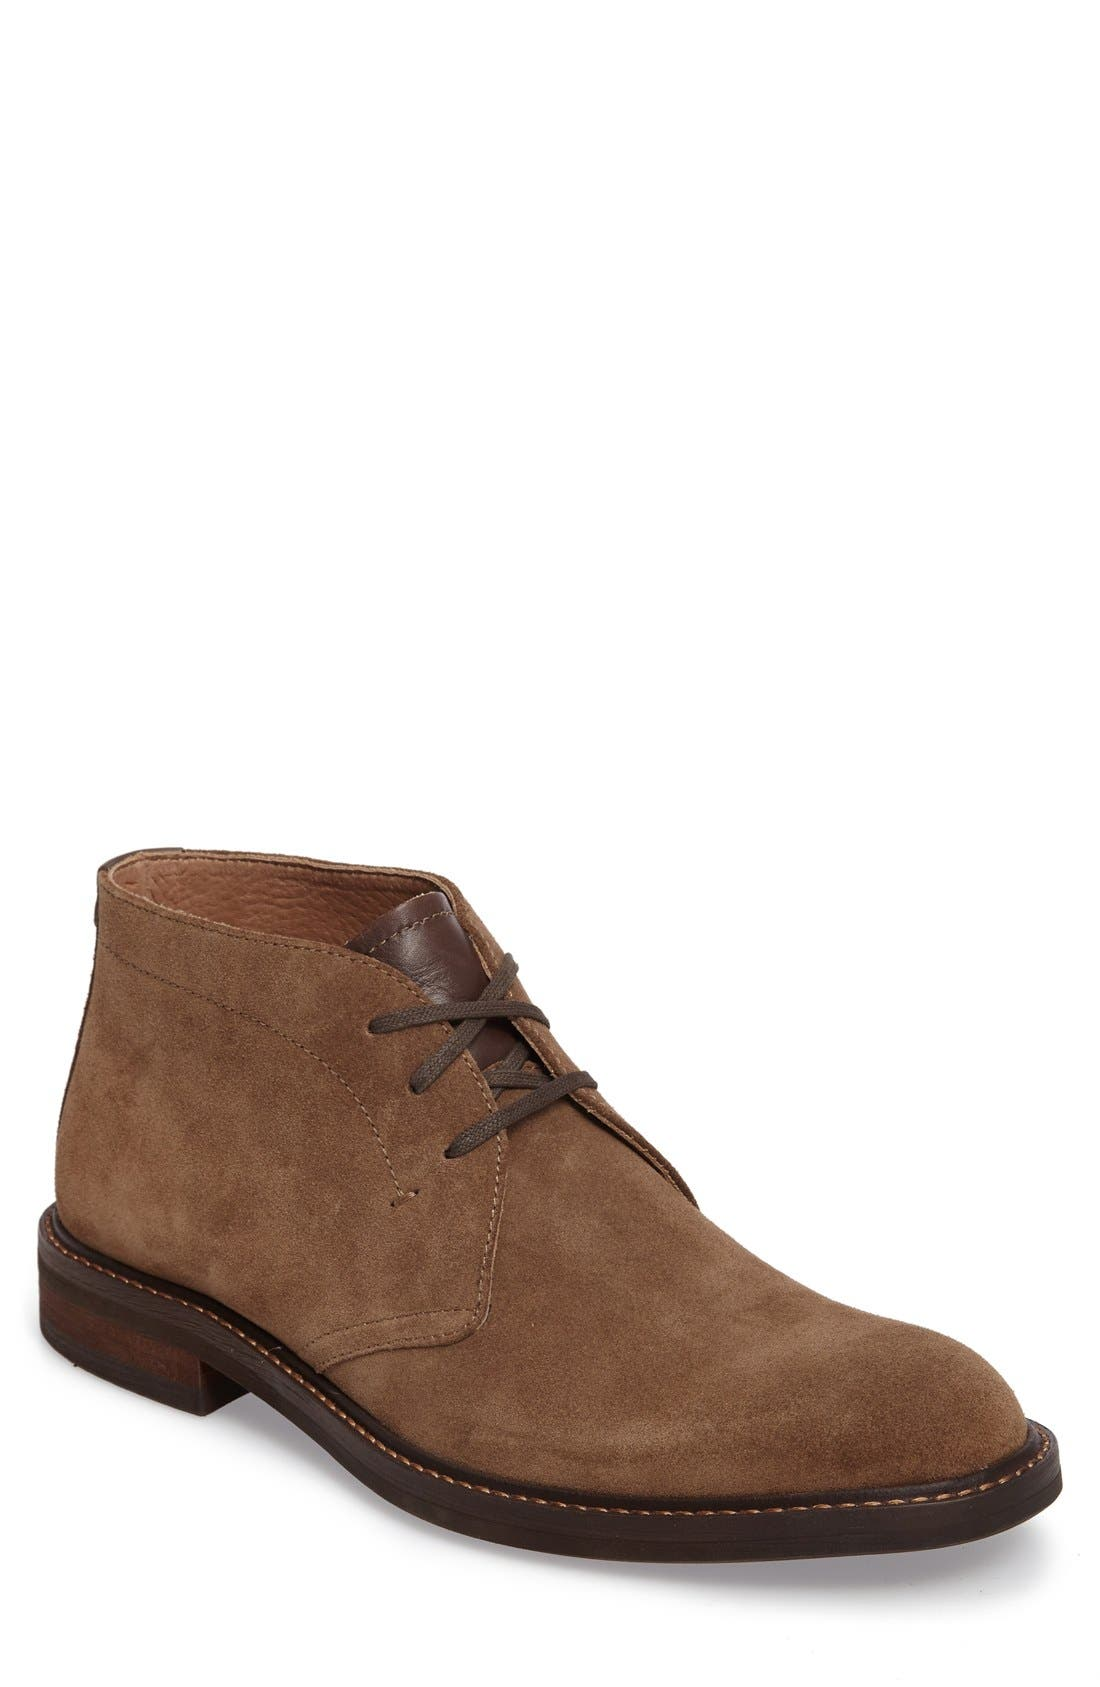 Main Image - 1901 Barrett Chukka Boot (Men)